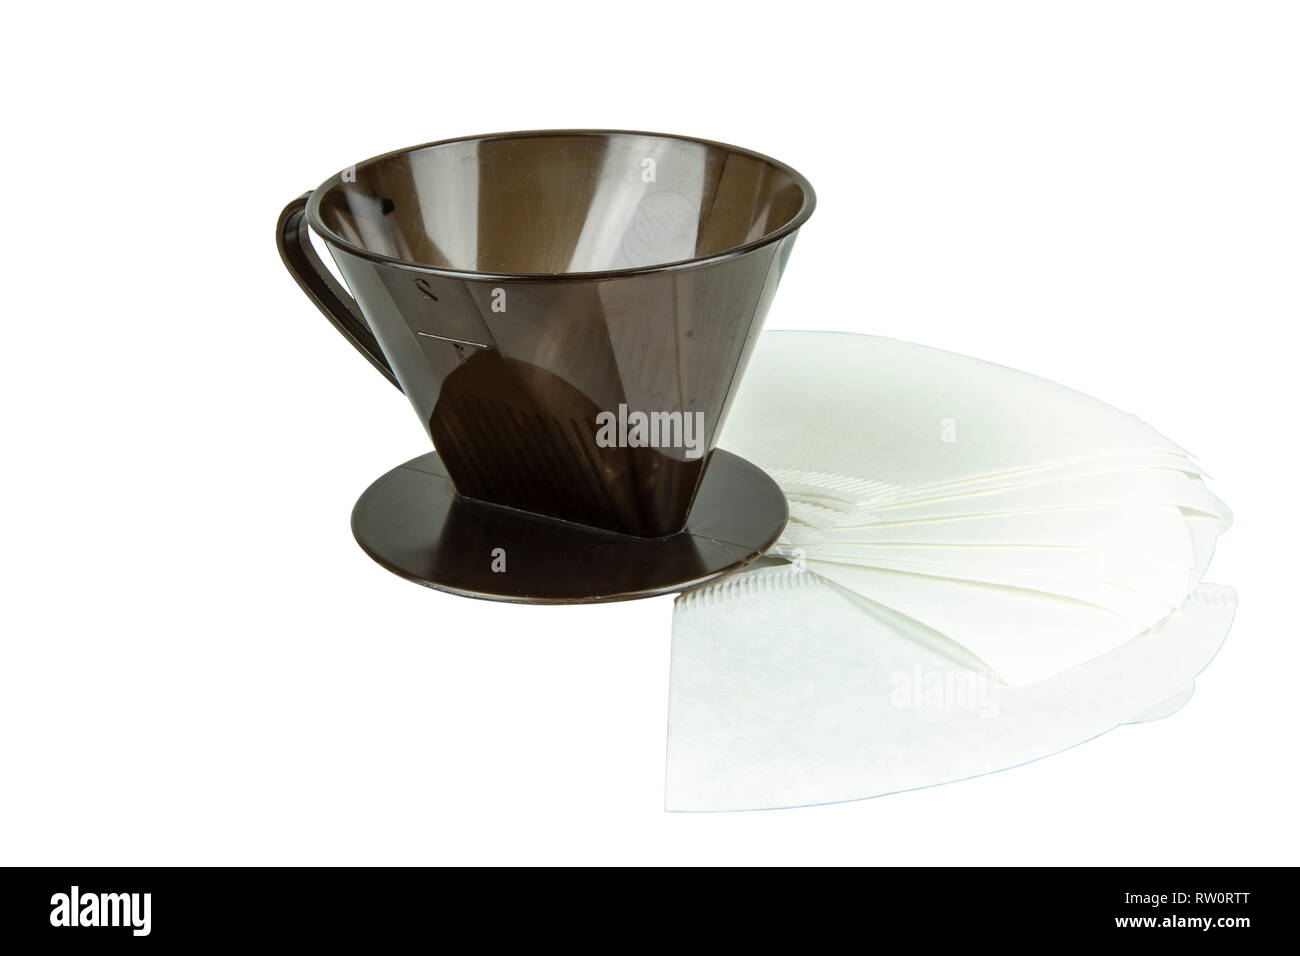 A coffee dripper with coffee filter isolate on white background. With clipping path. - Stock Image